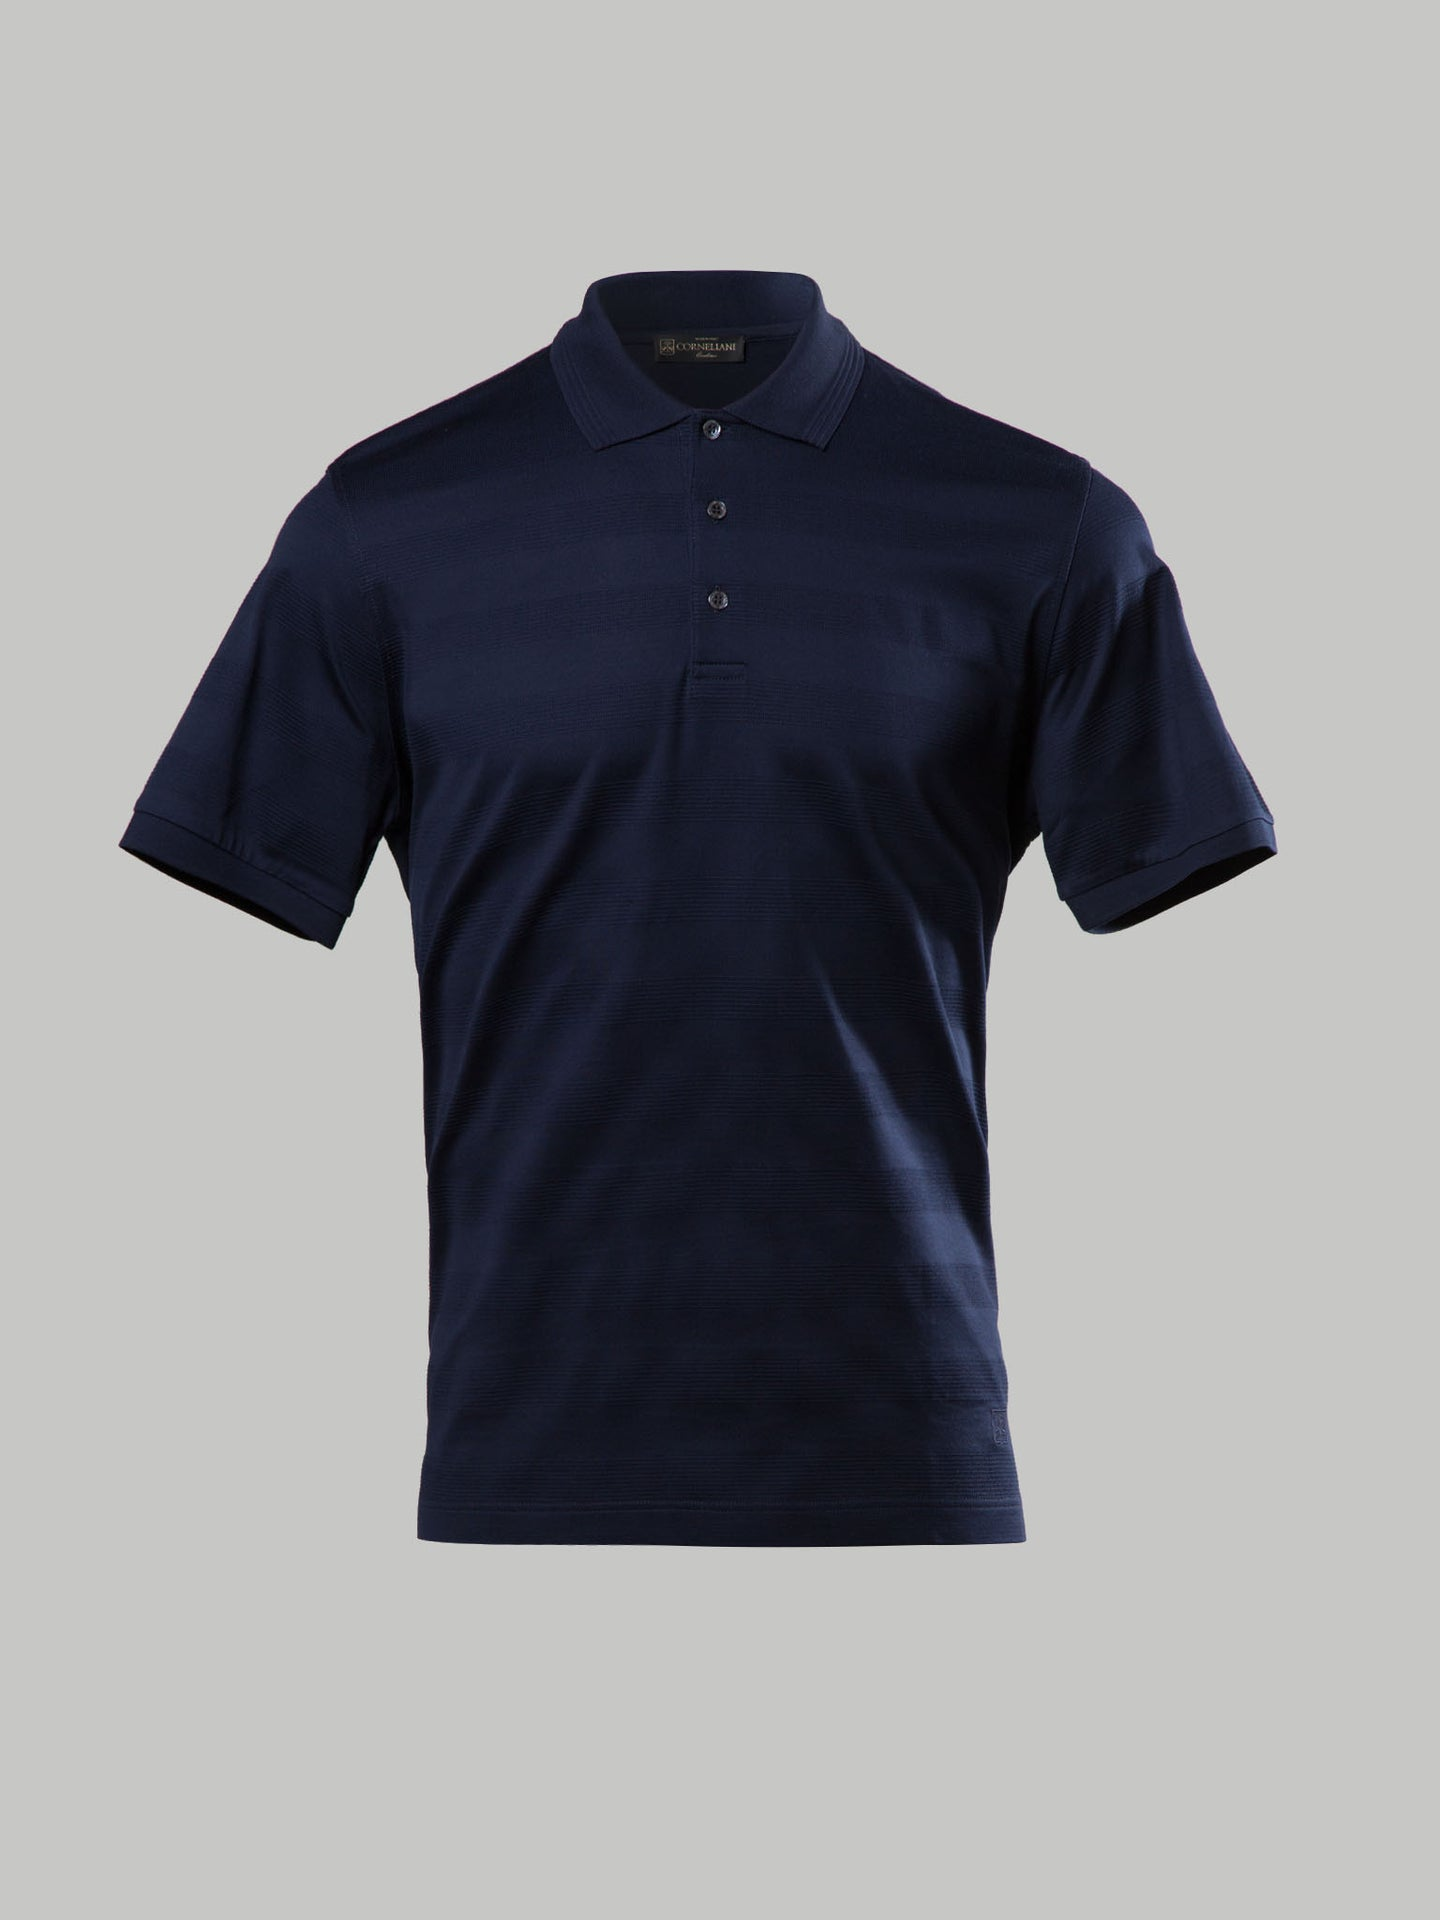 Corneliani Tonal Stripe Polo (Navy)